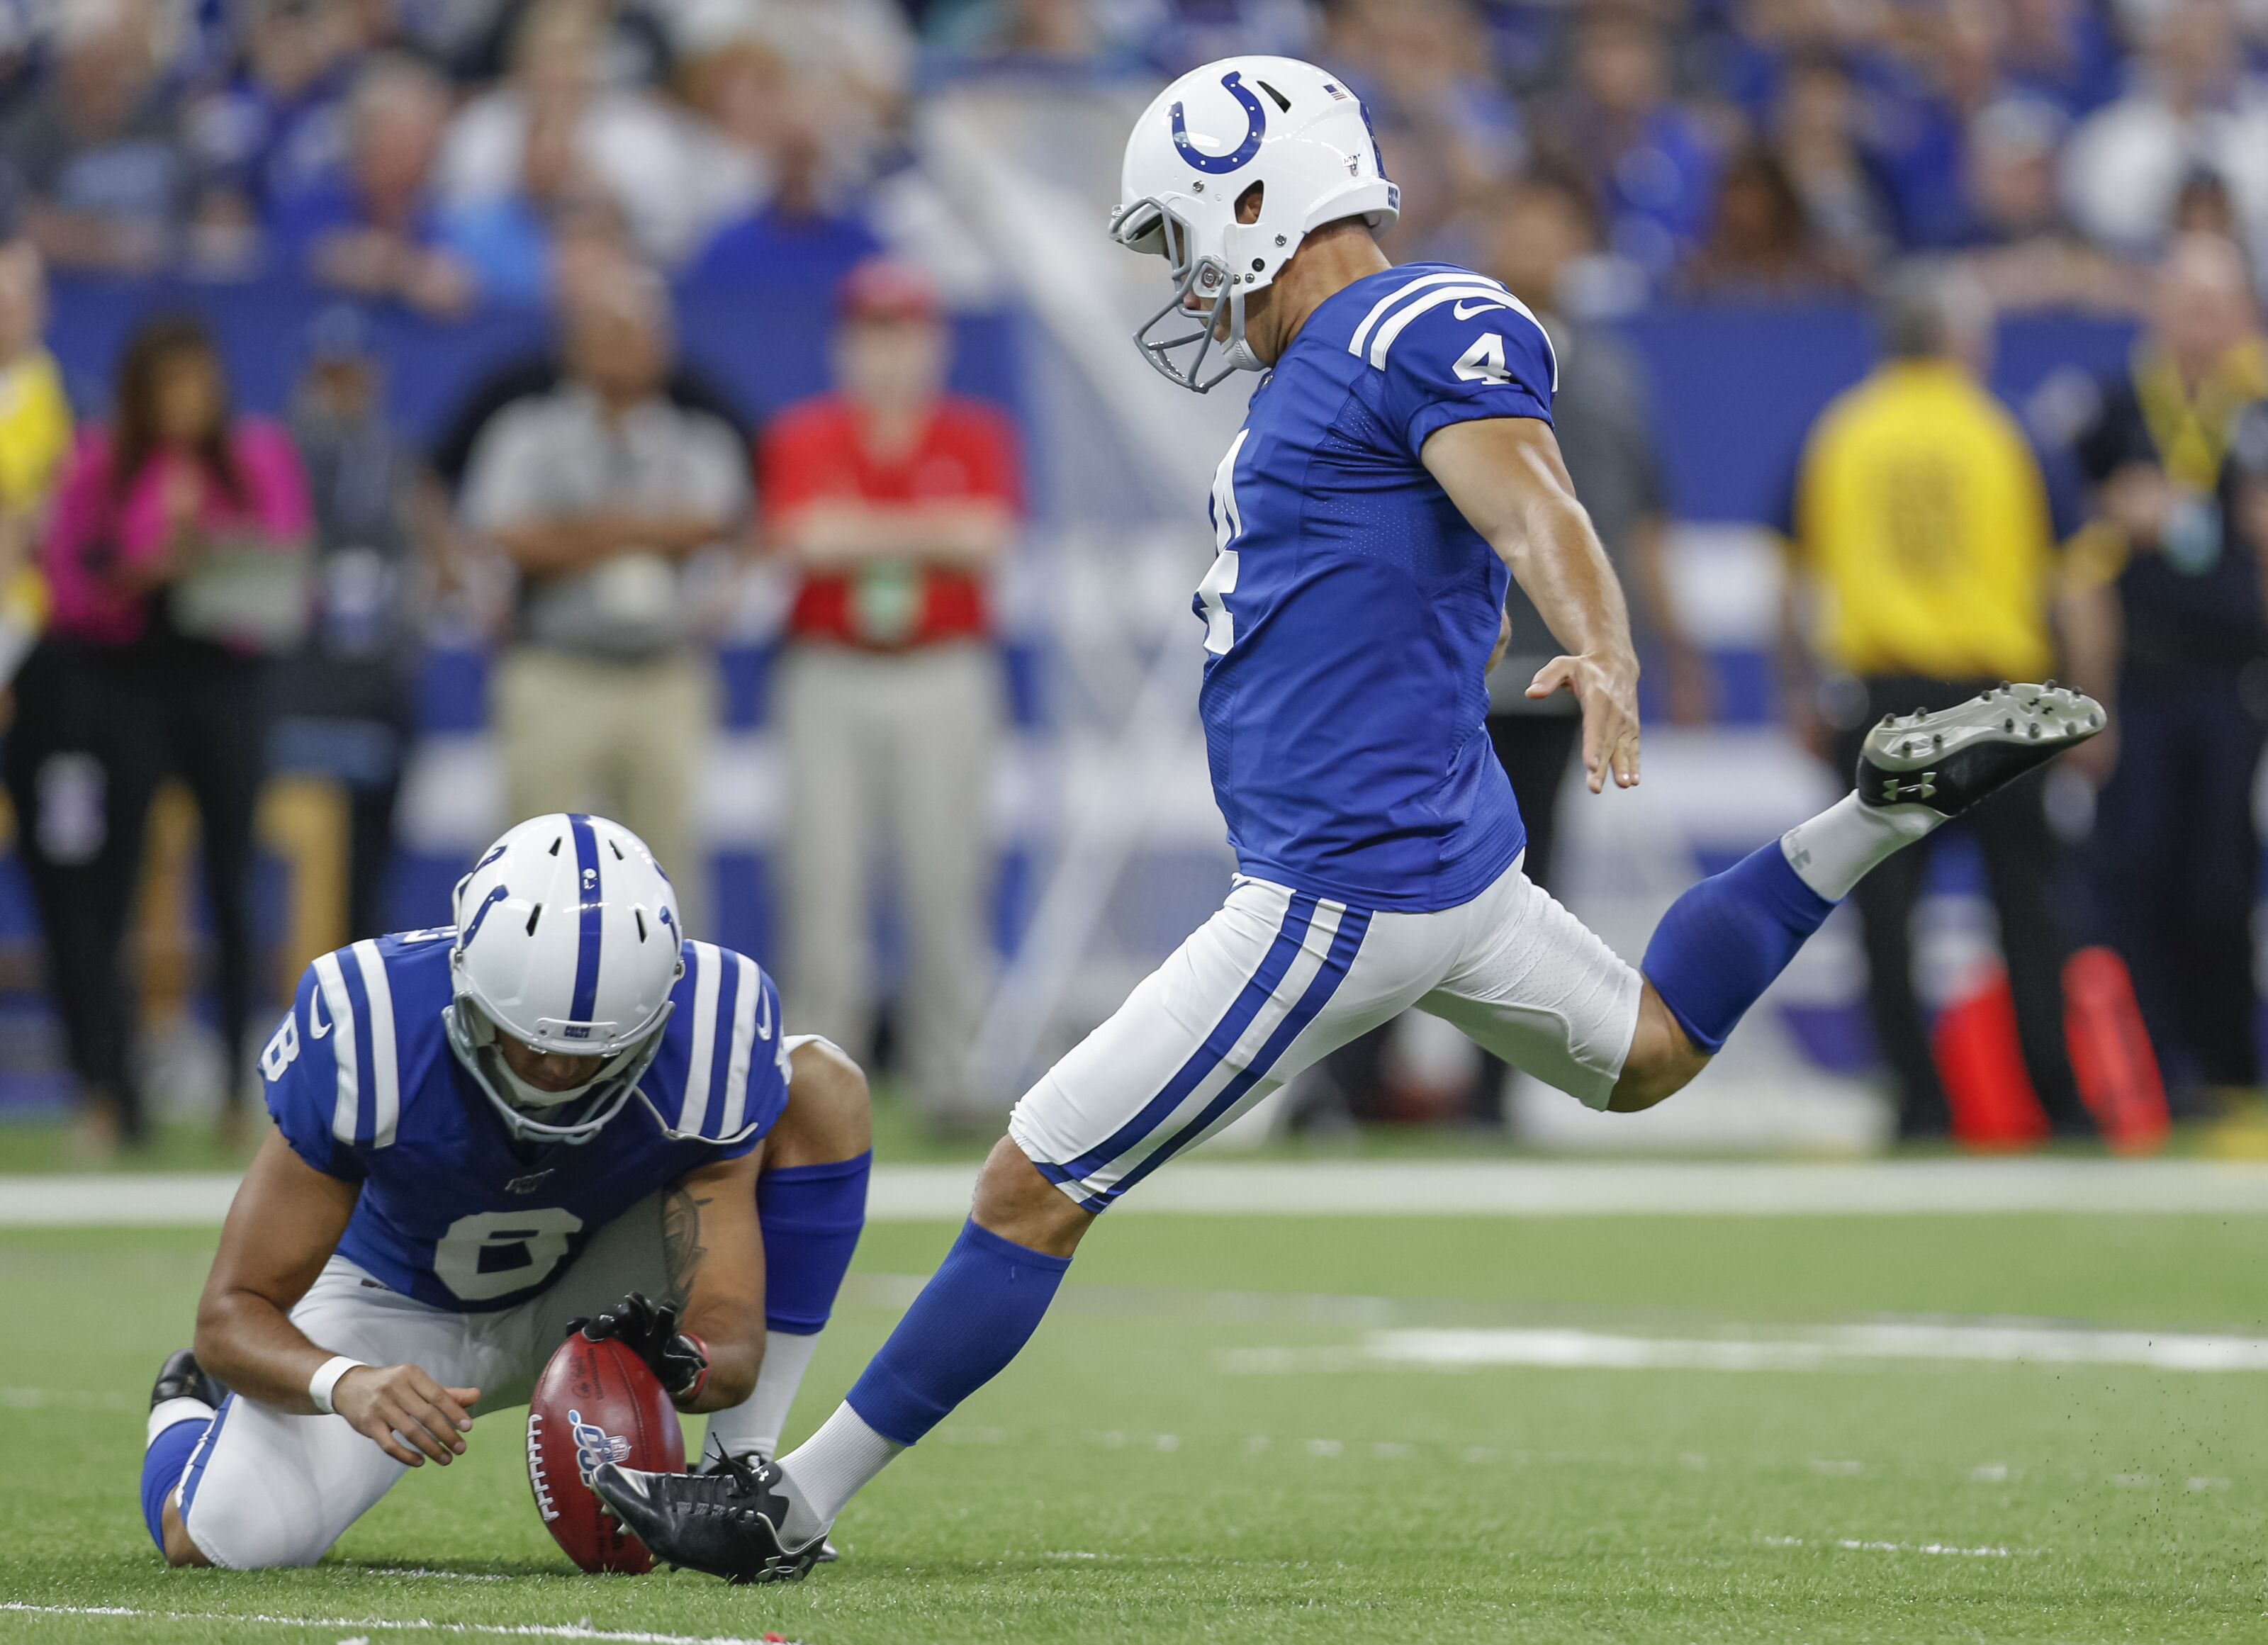 Colts vs. Falcons: Special teams grades